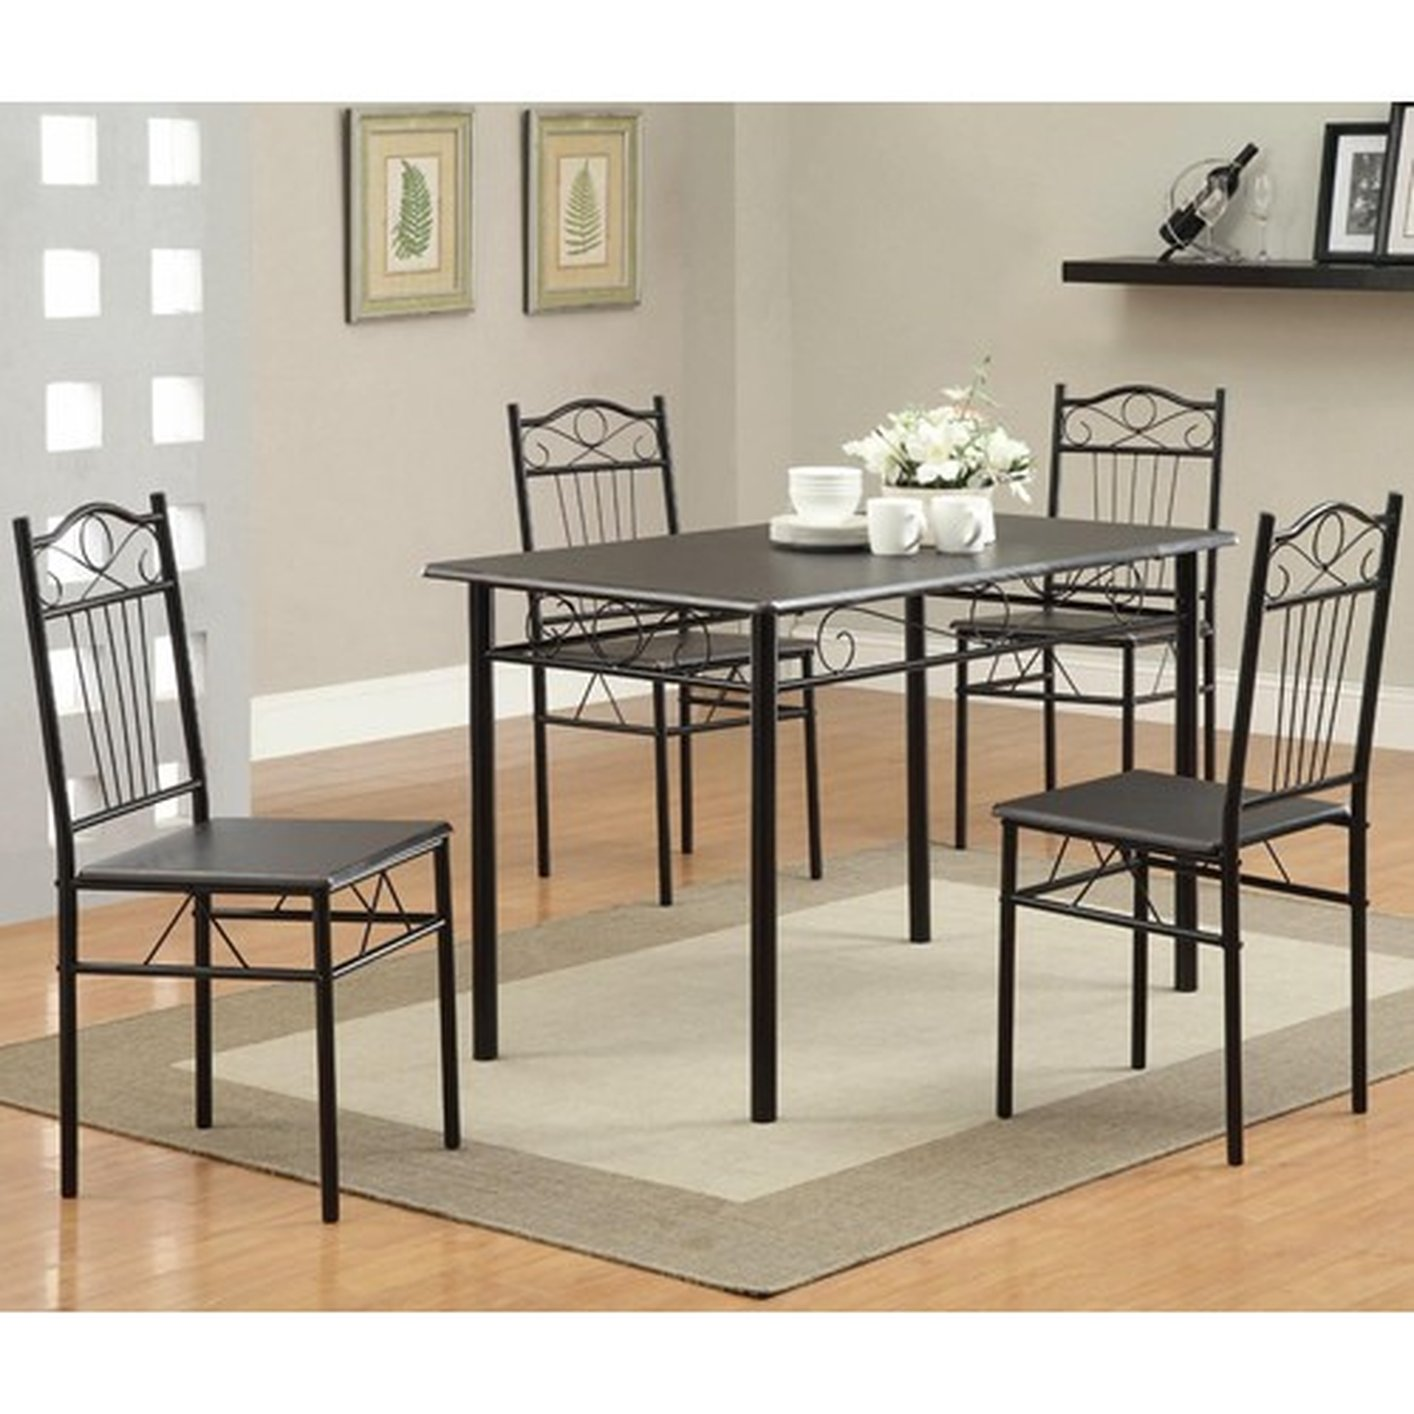 black metal dining table and chair set steal a sofa